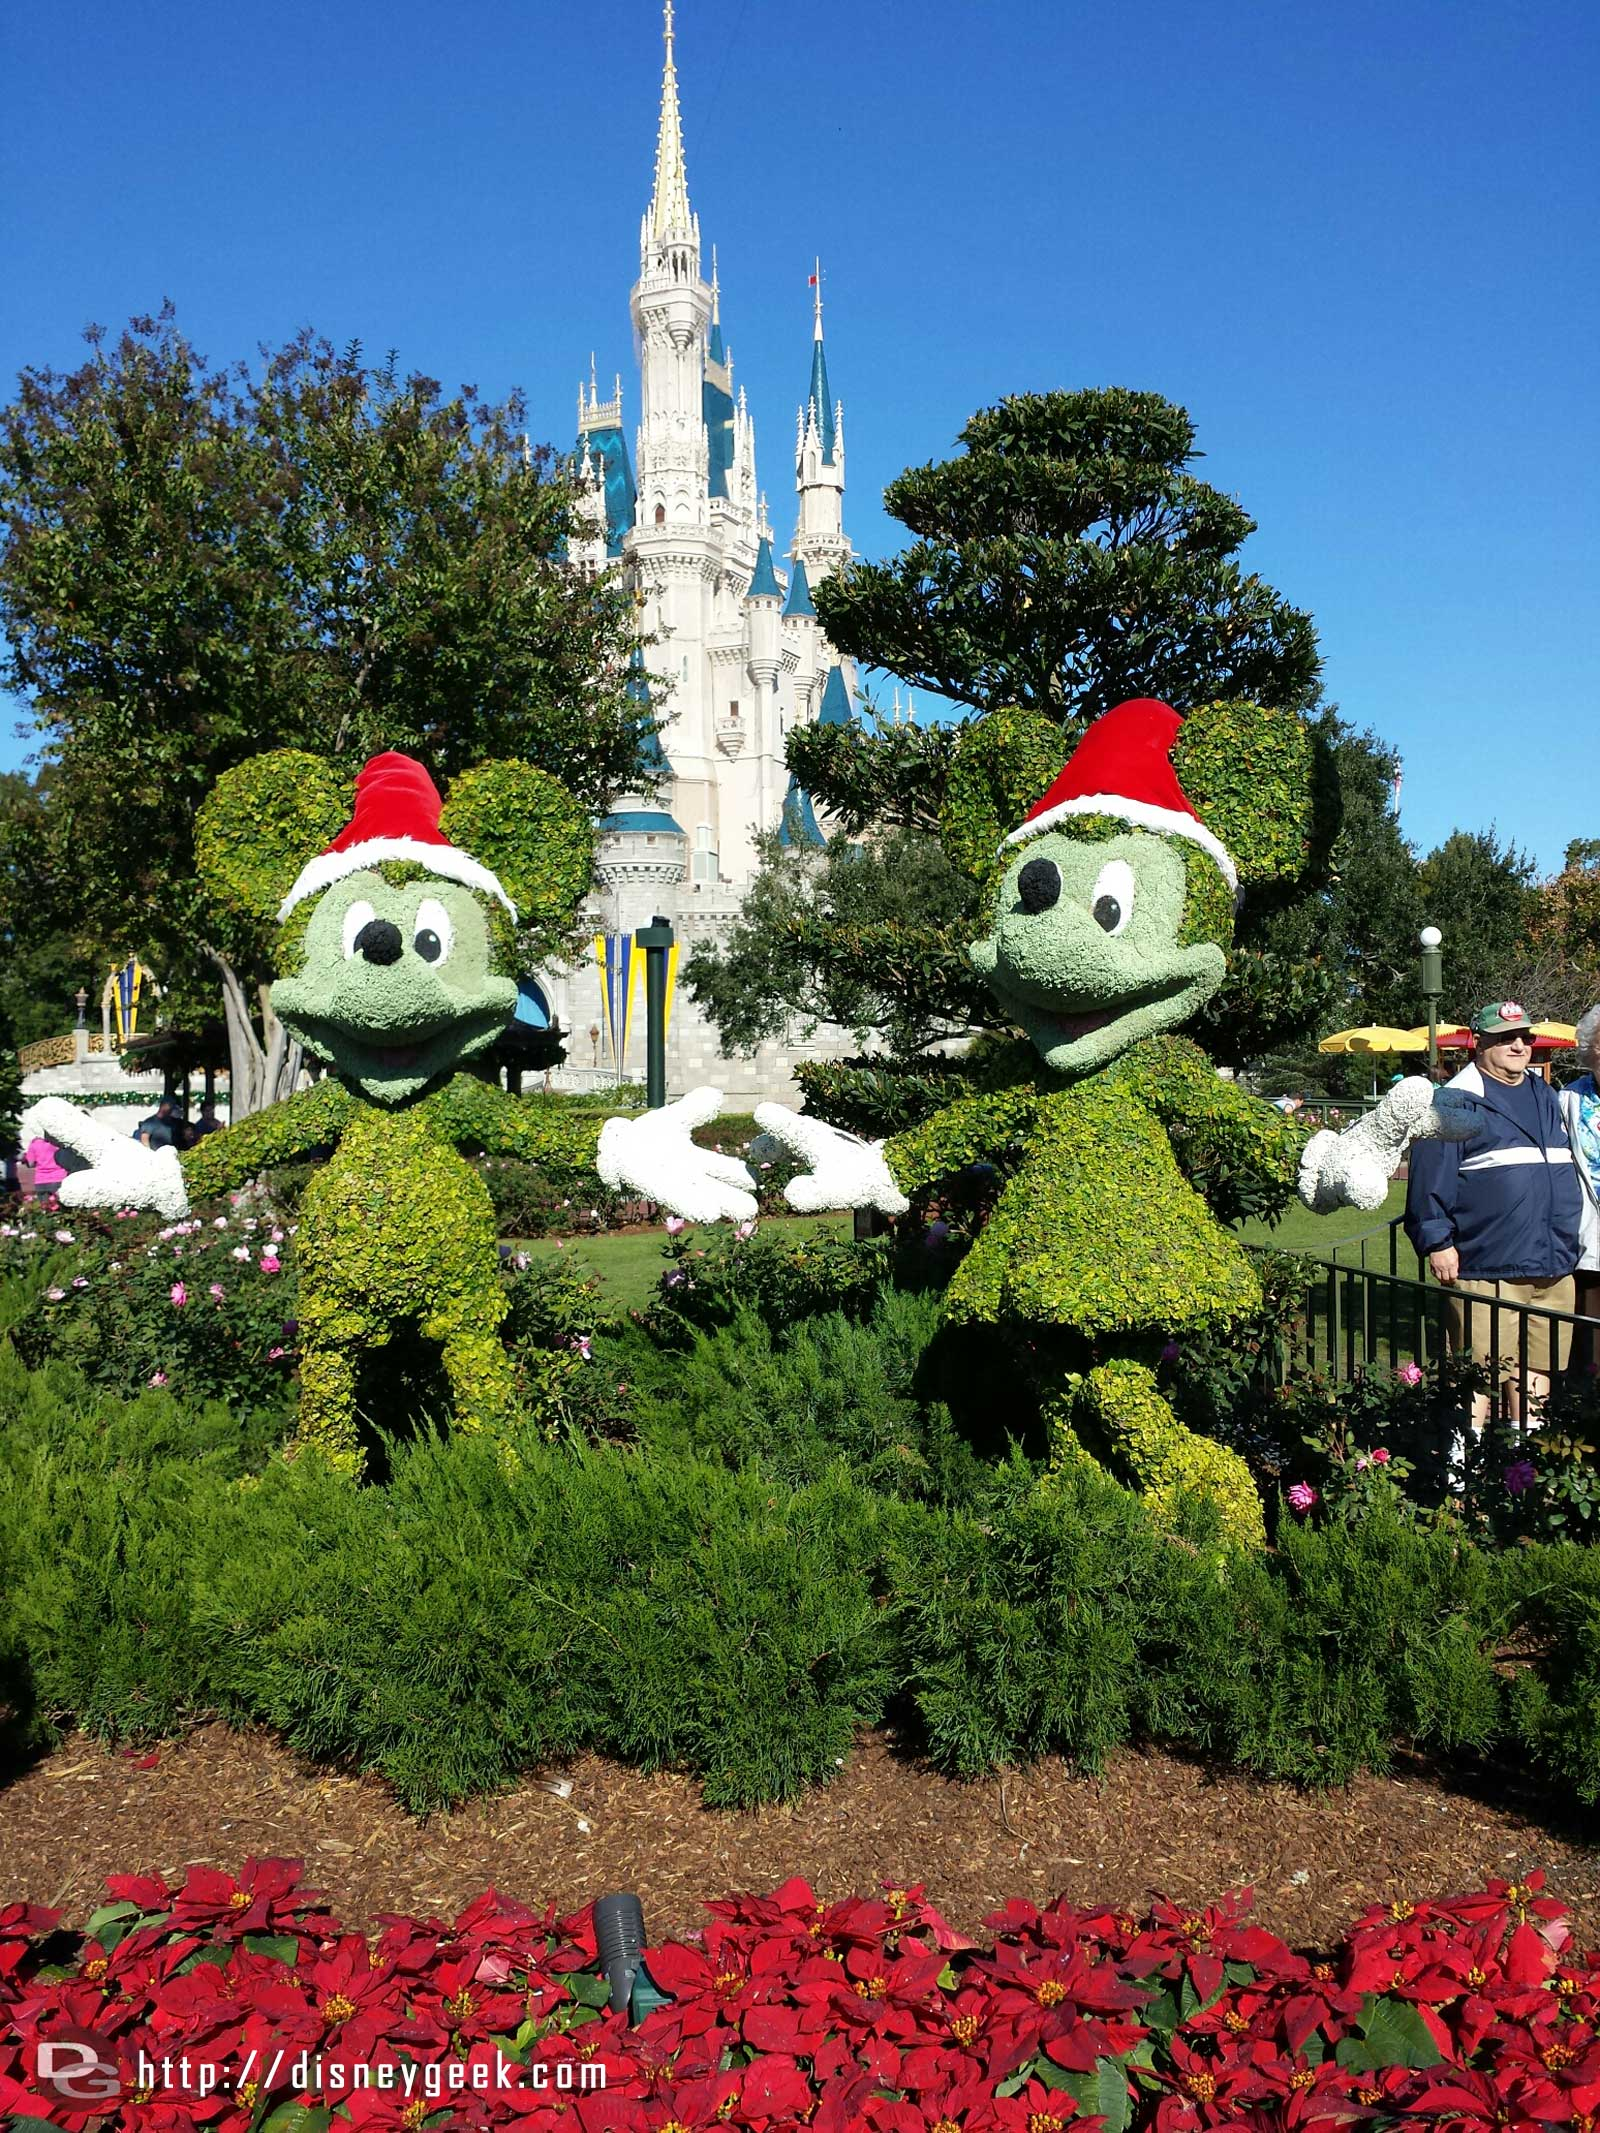 Mickey and Minnie topiaries dressed for the season.